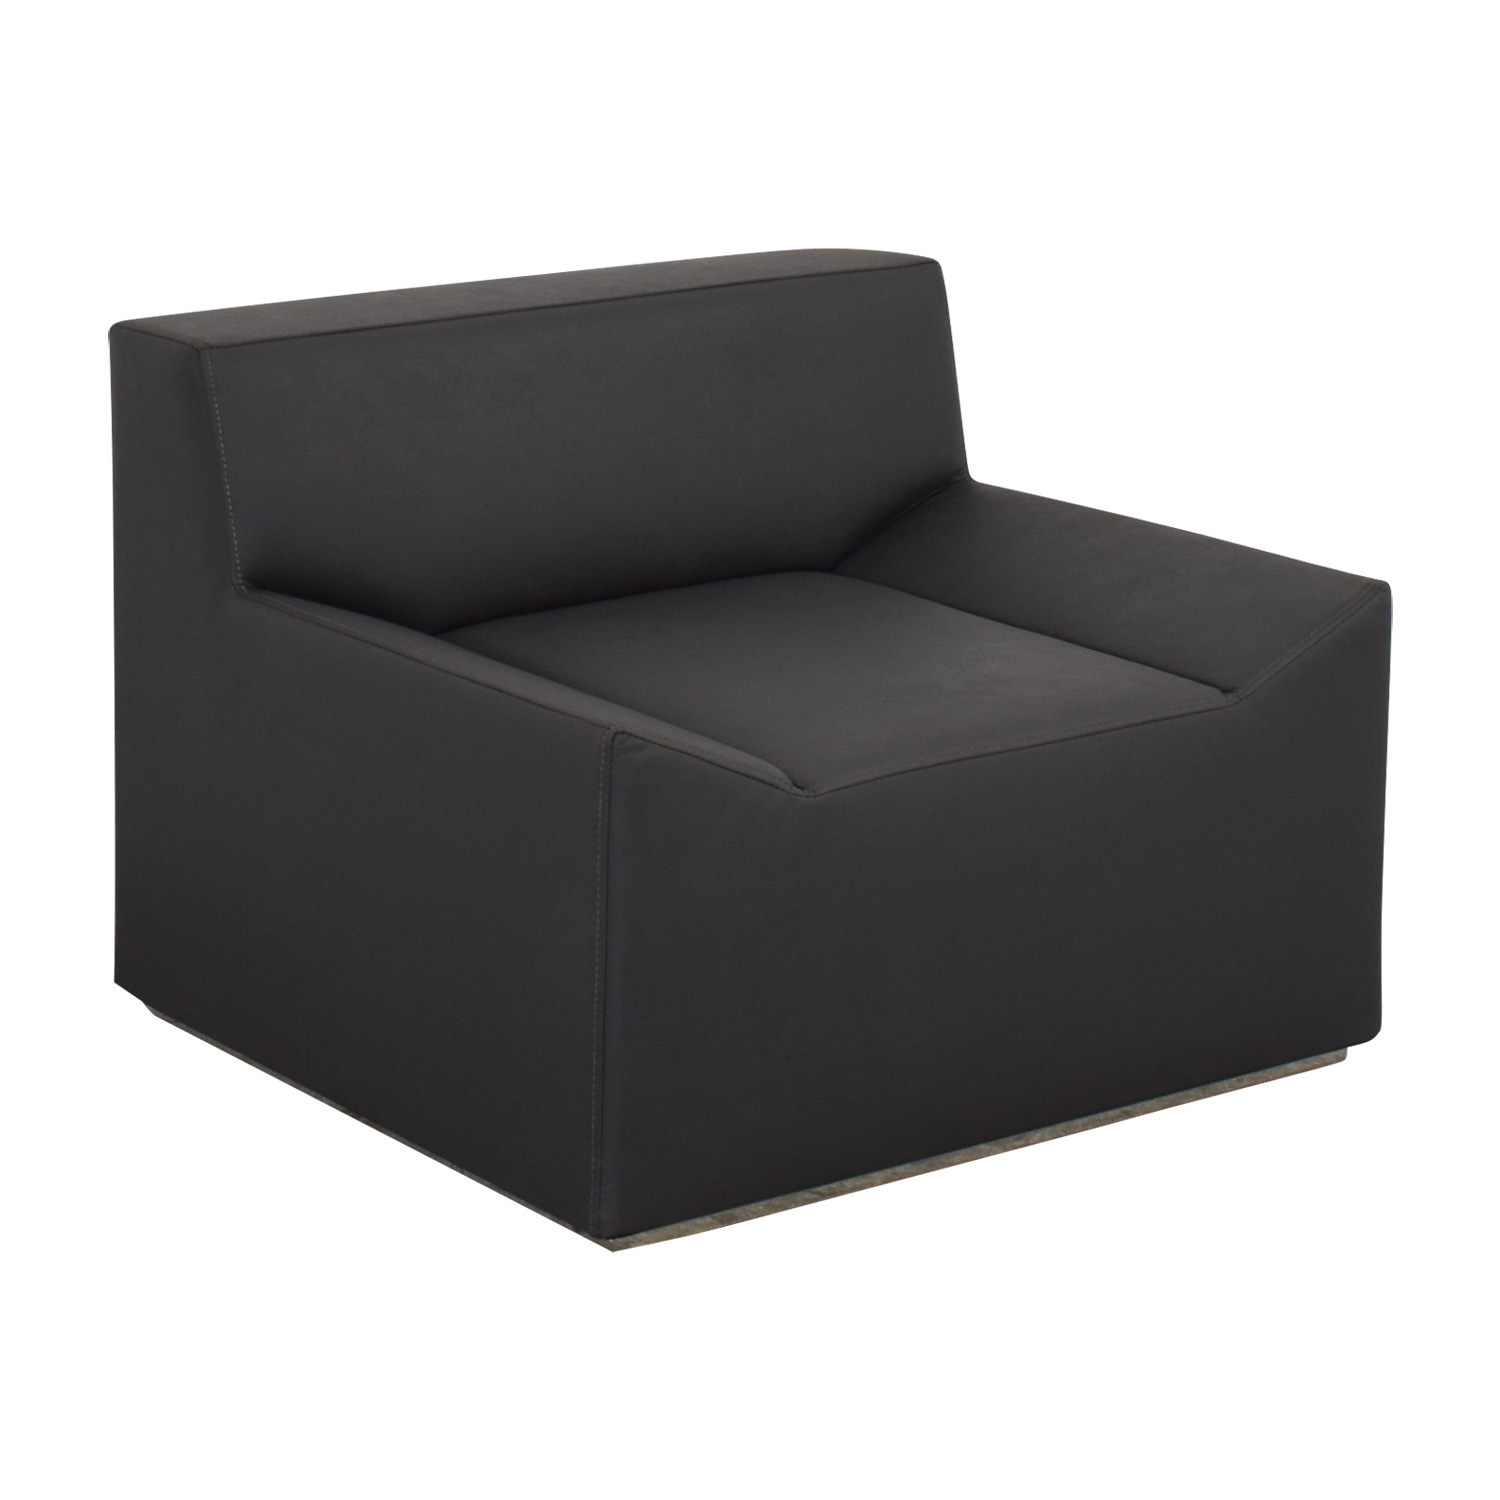 Blu Dot Blu Dot Couchoid Lounge Chair discount